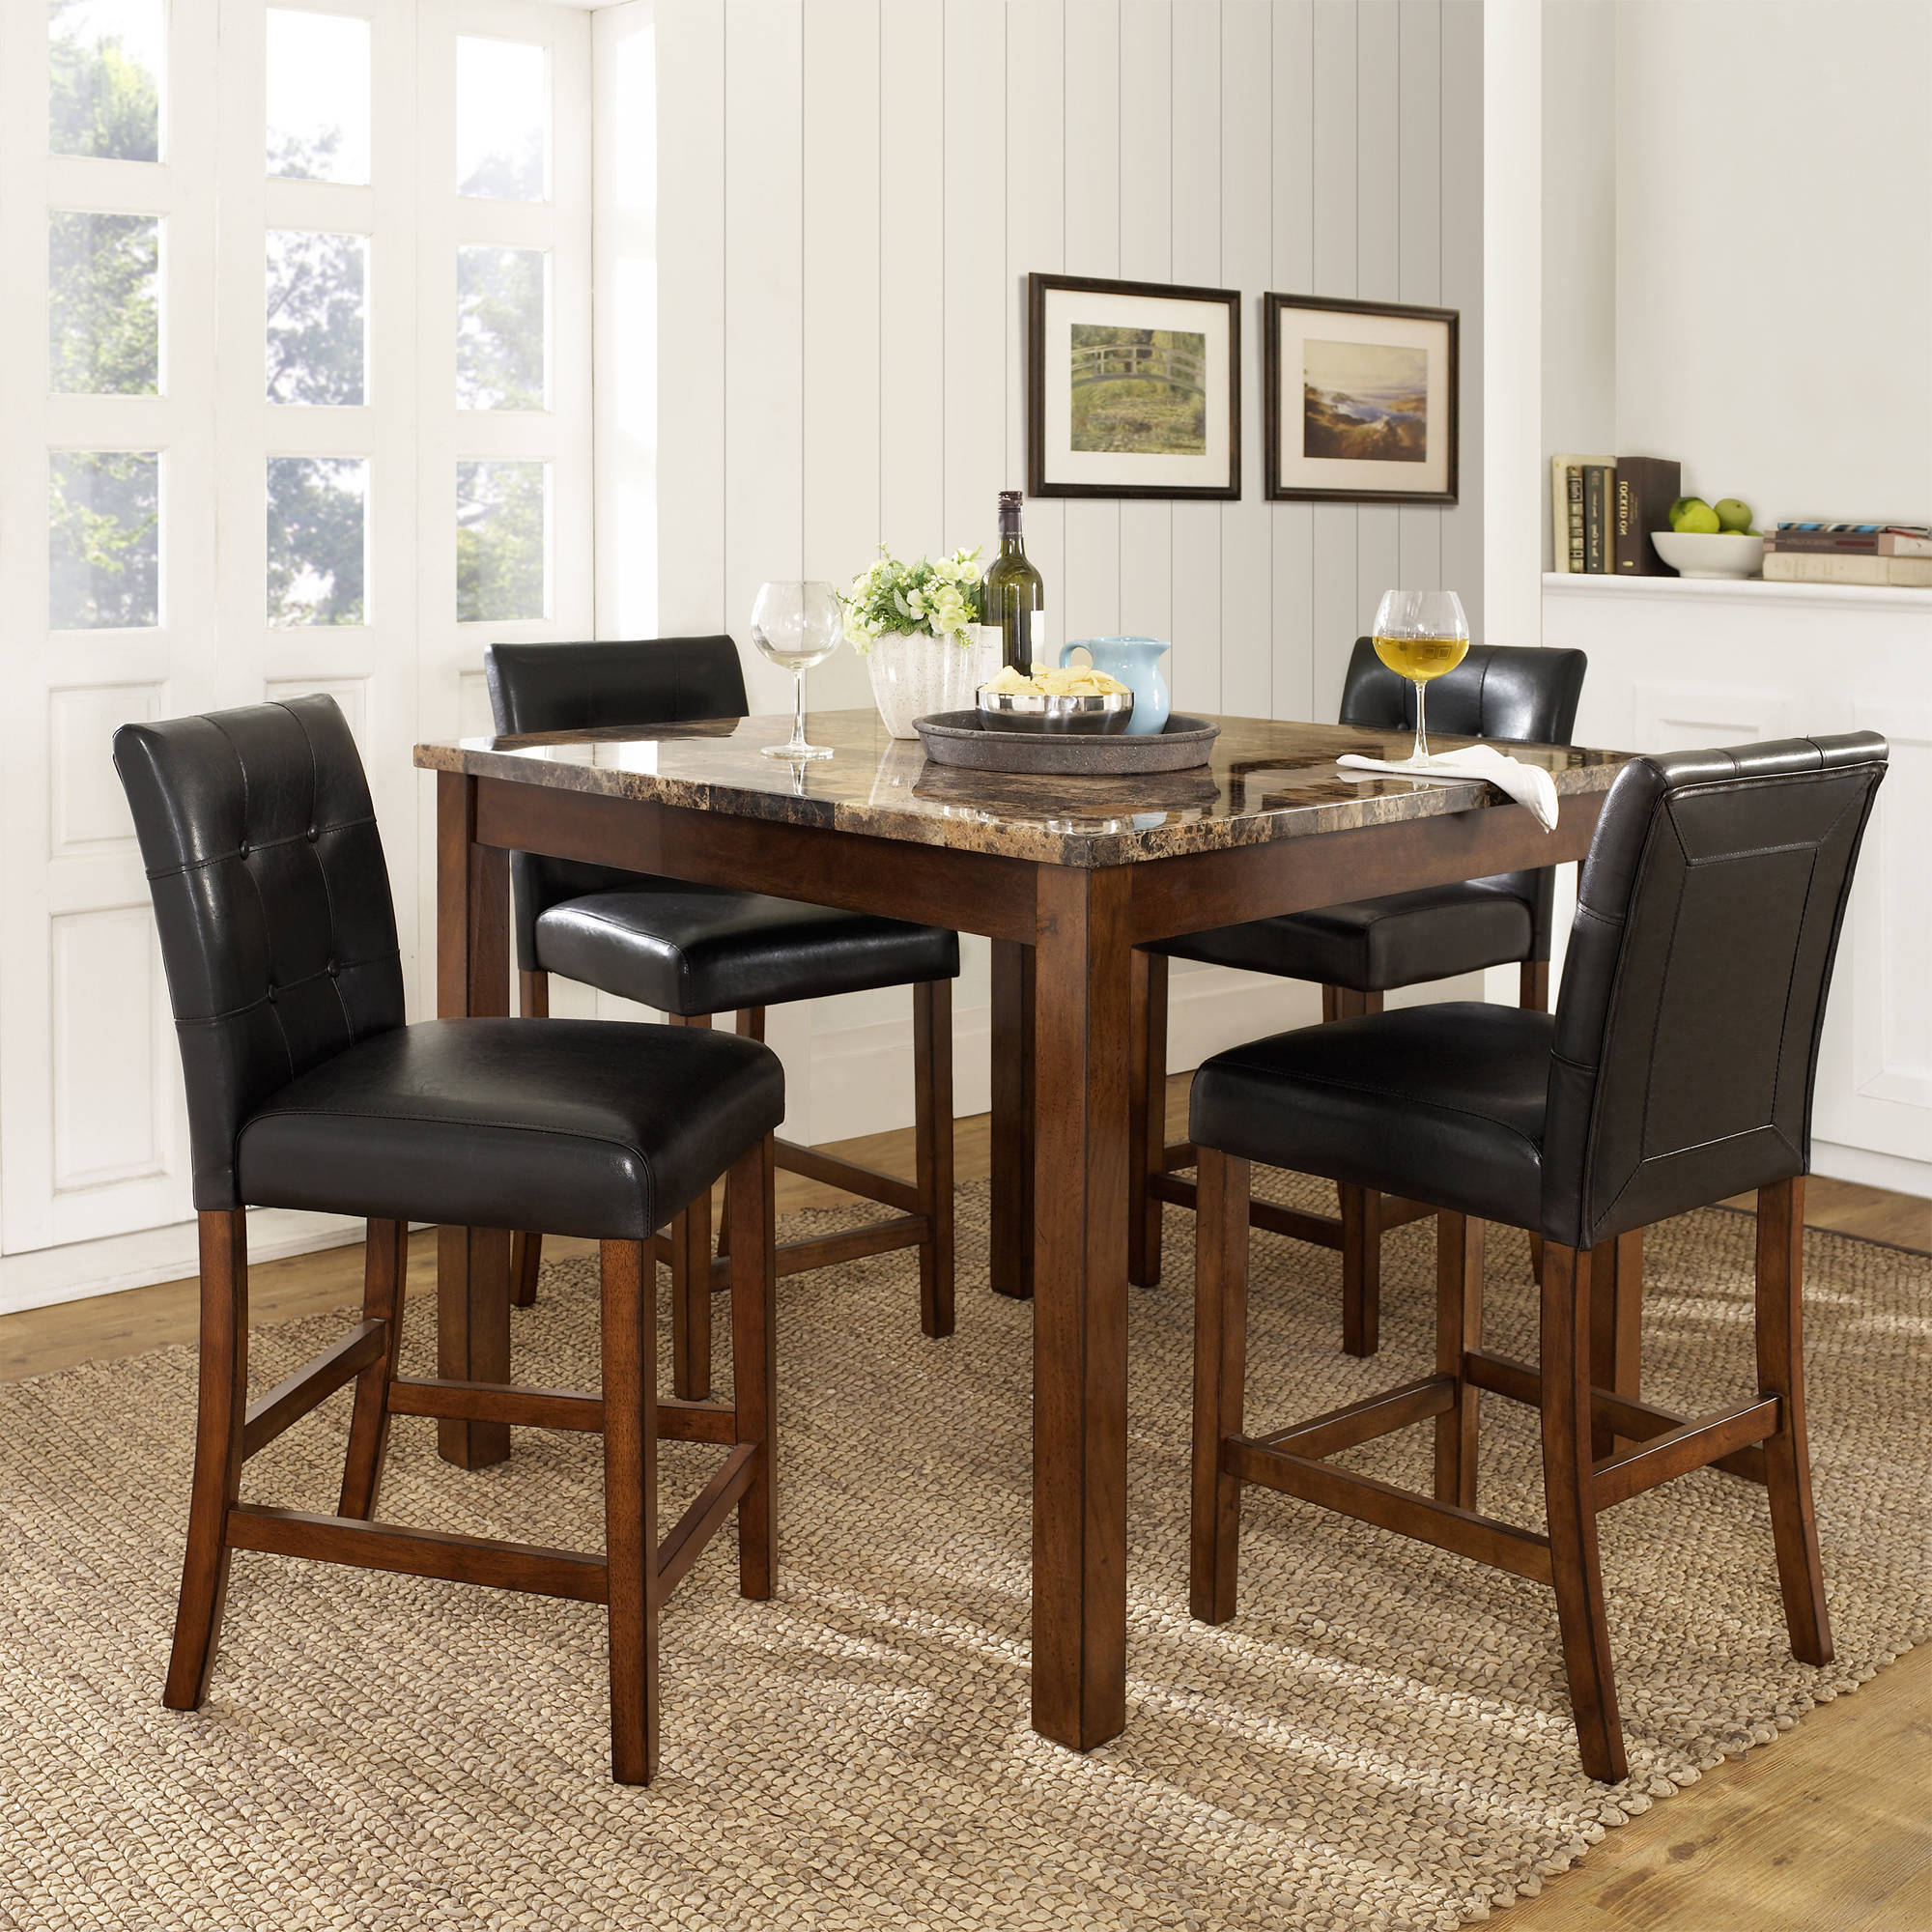 Anette 3 Piece Counter Height Dining Sets Throughout Popular 5 Piece Baxter Dining Set With Storage Ottoman, Multiple Colors (View 8 of 25)